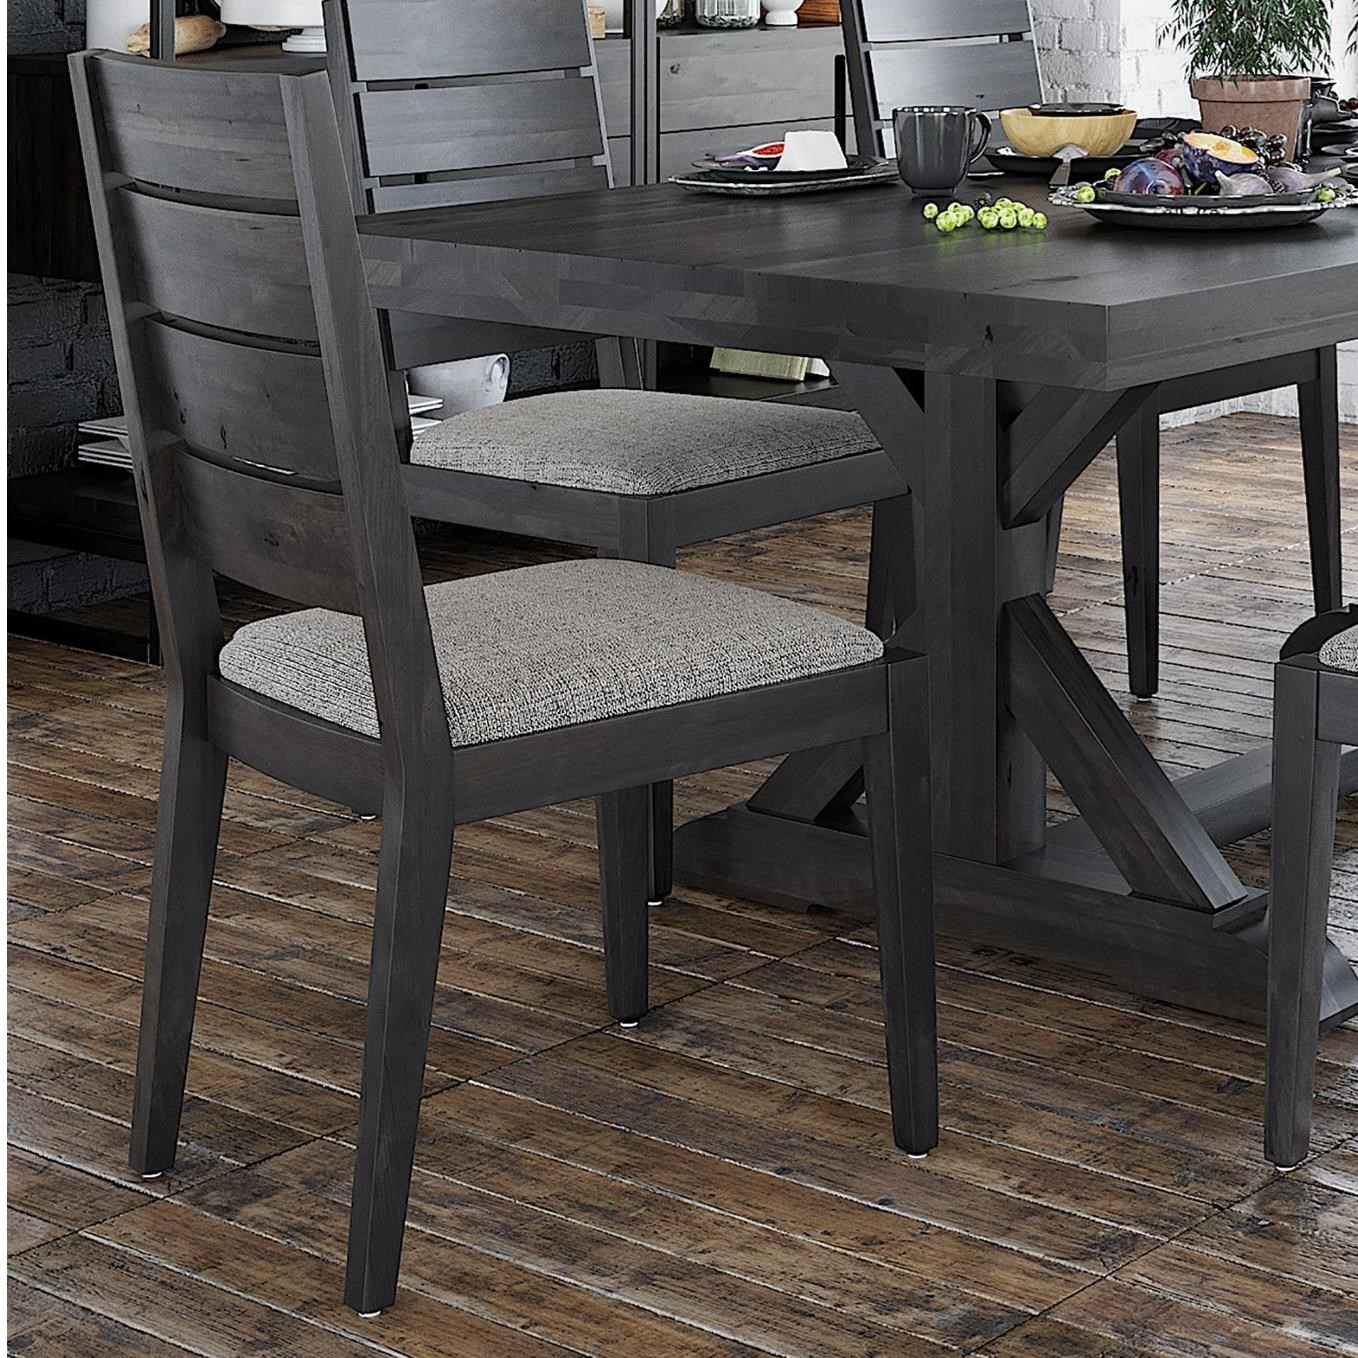 Loft - Custom Dining Customizable Side Chair w/ Upholstered Seat by Canadel at Dinette Depot